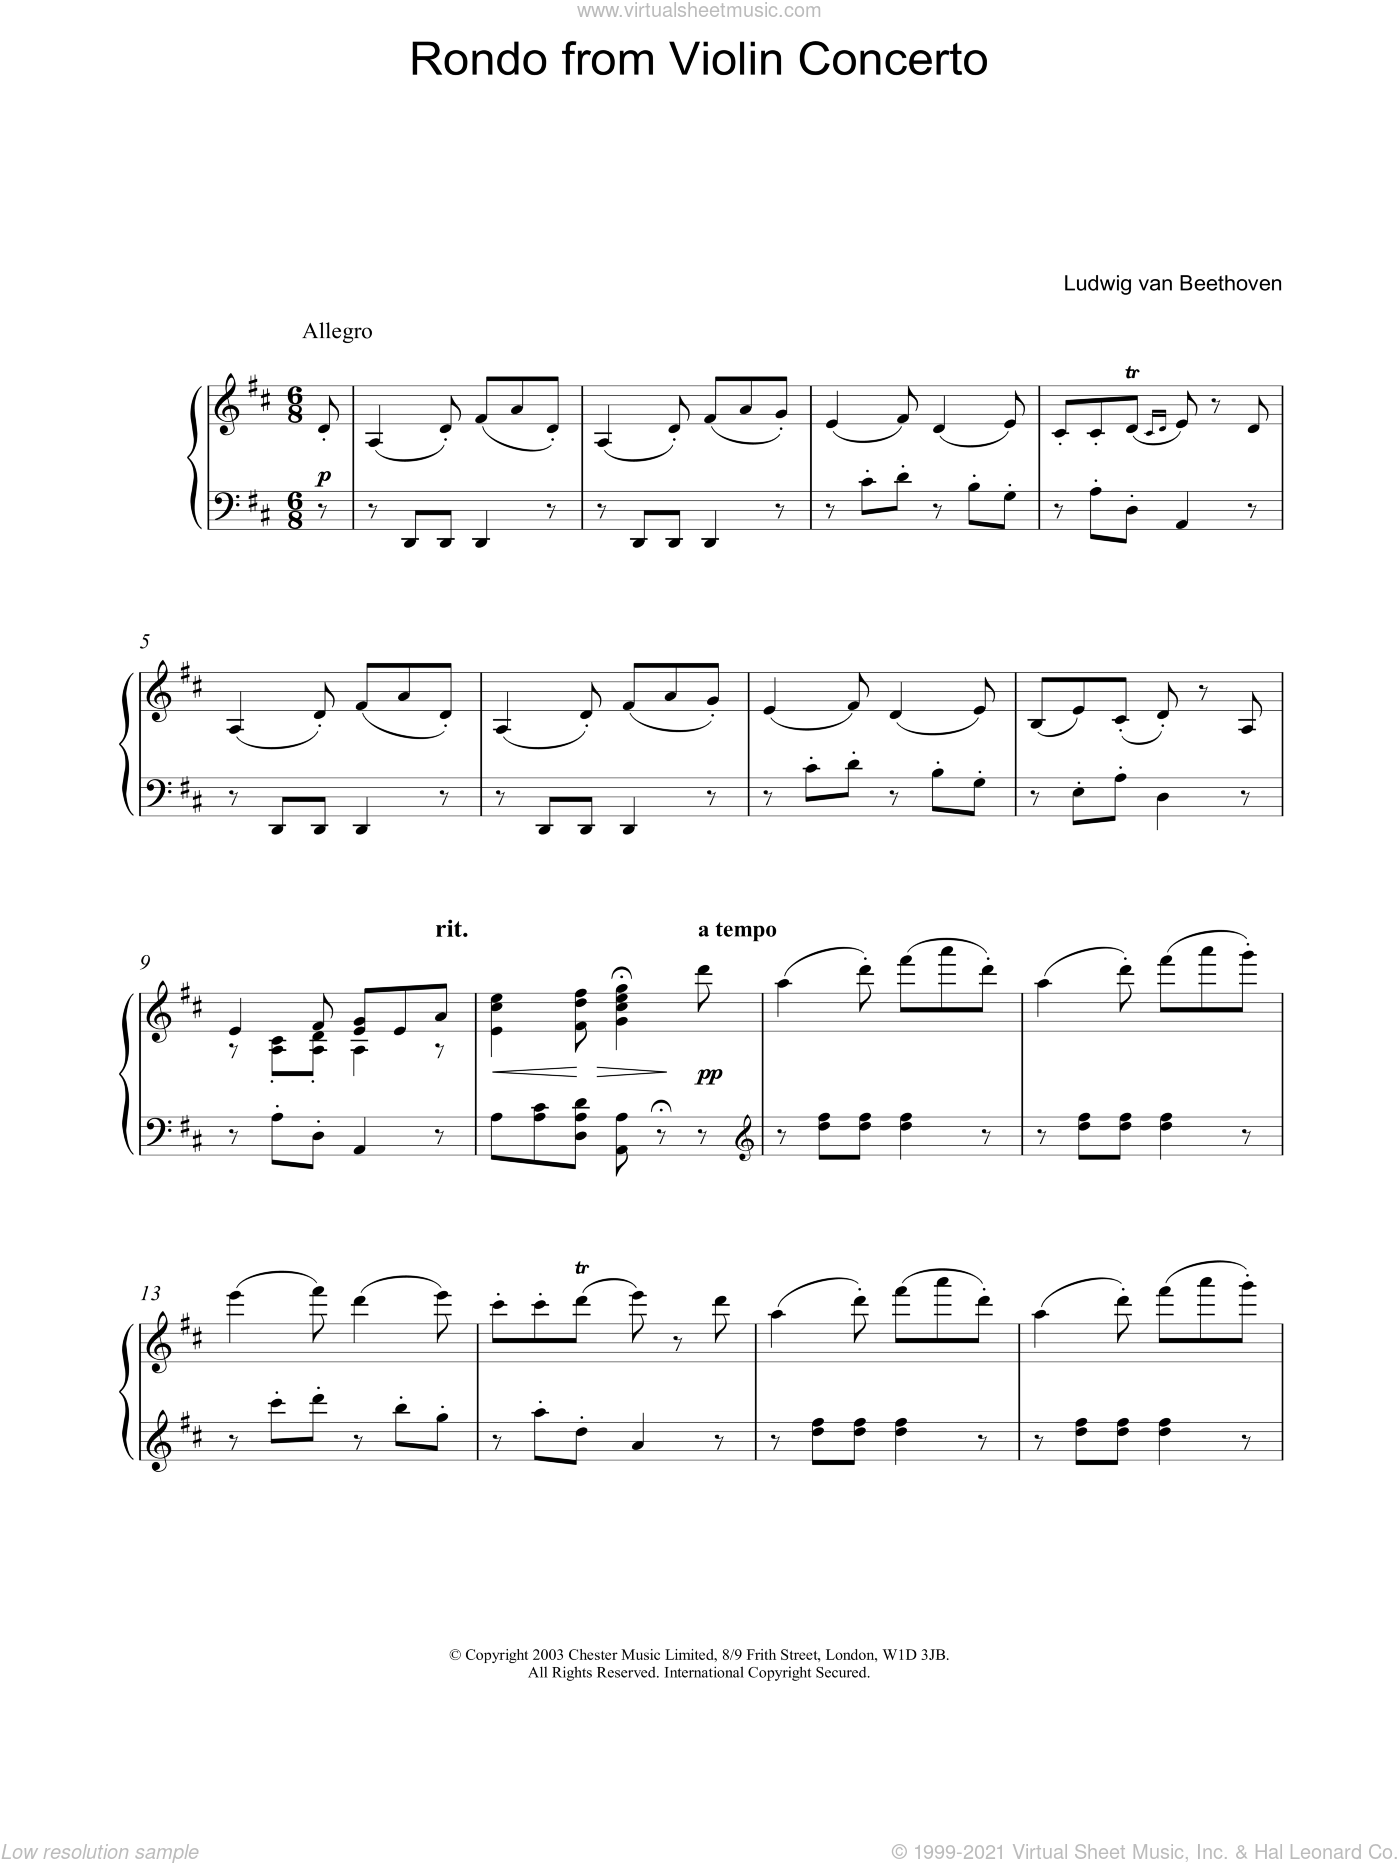 Rondo from Violin Concerto sheet music for piano solo by Ludwig van Beethoven, classical score, intermediate skill level